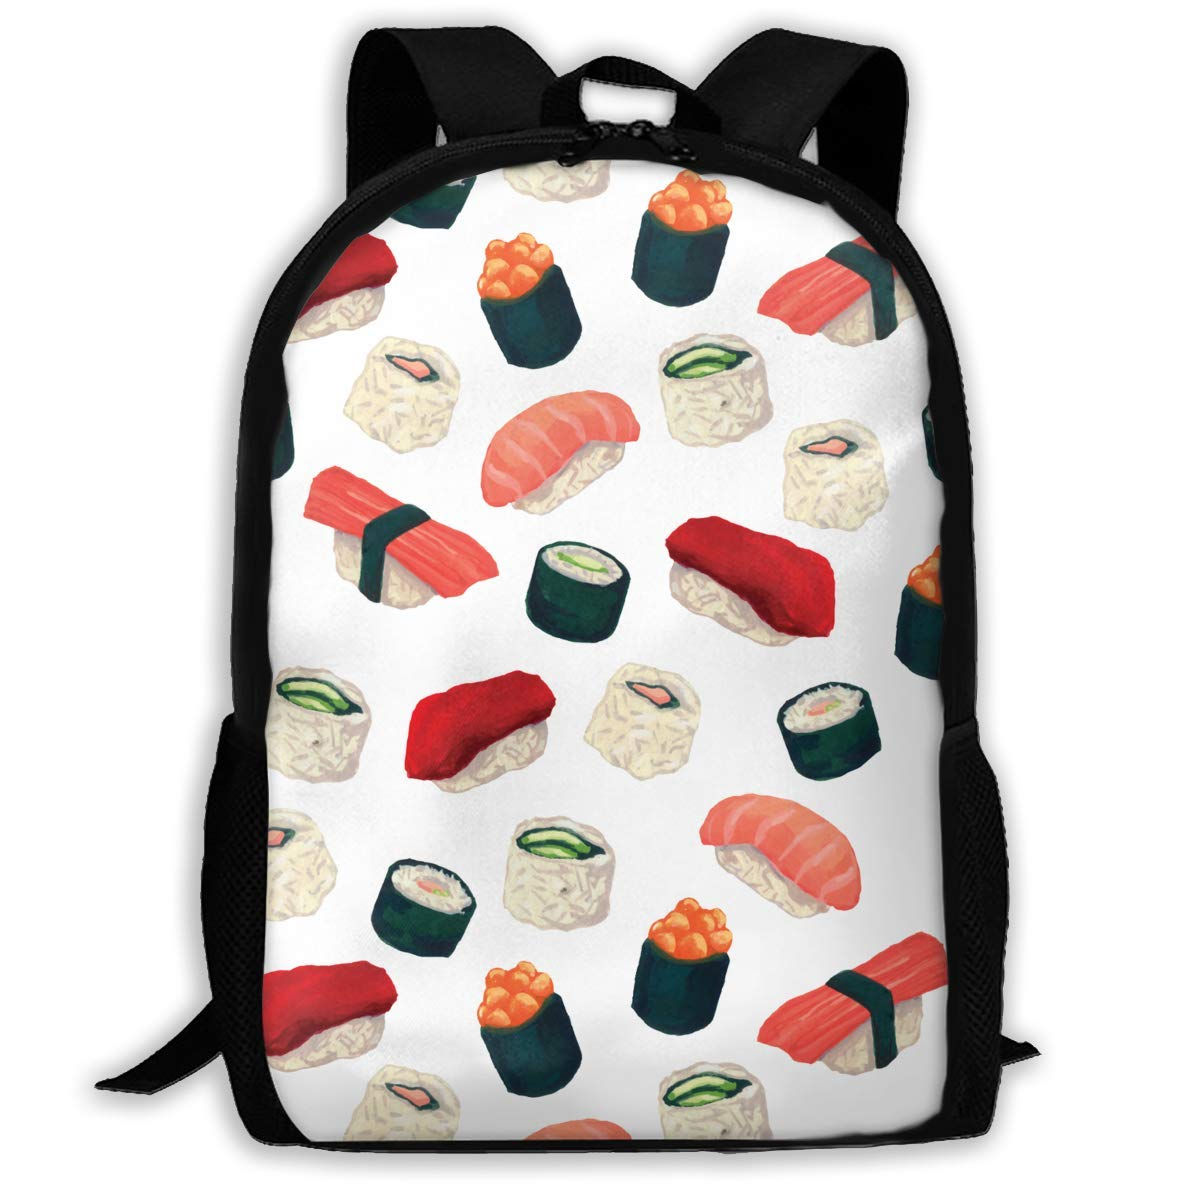 jhguihuyftyrtytgjkh Casual Backpack Japanese Sushi 3D Printing School Bags for Boys Girls Unisex Adult Shoulder Bag ILY Bag Outdoor Orts